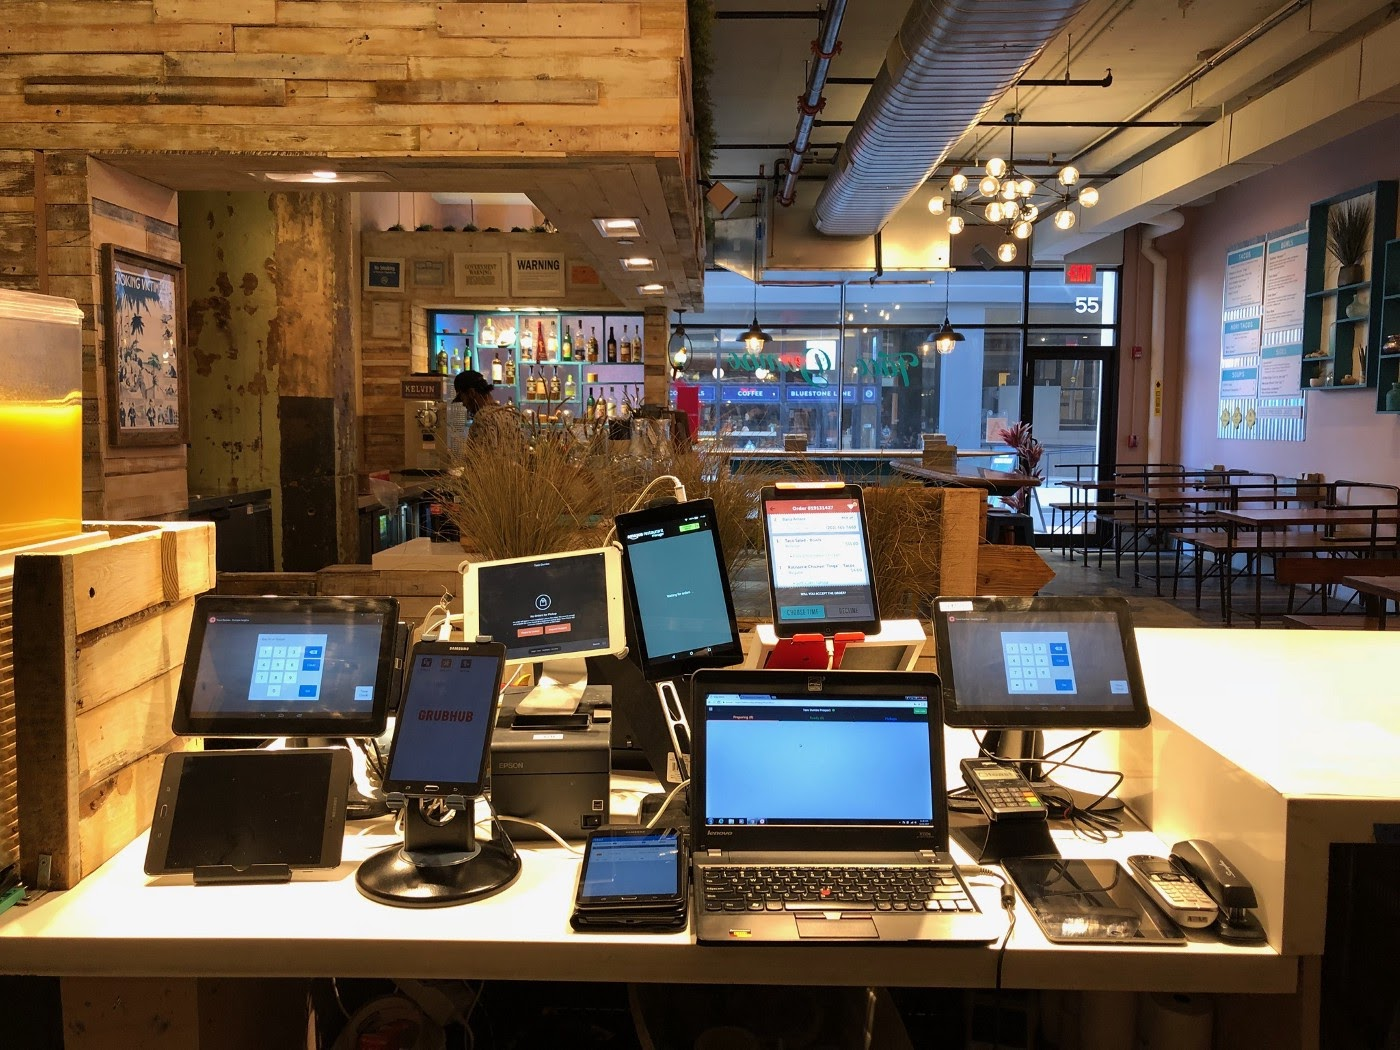 Tablets on the counter